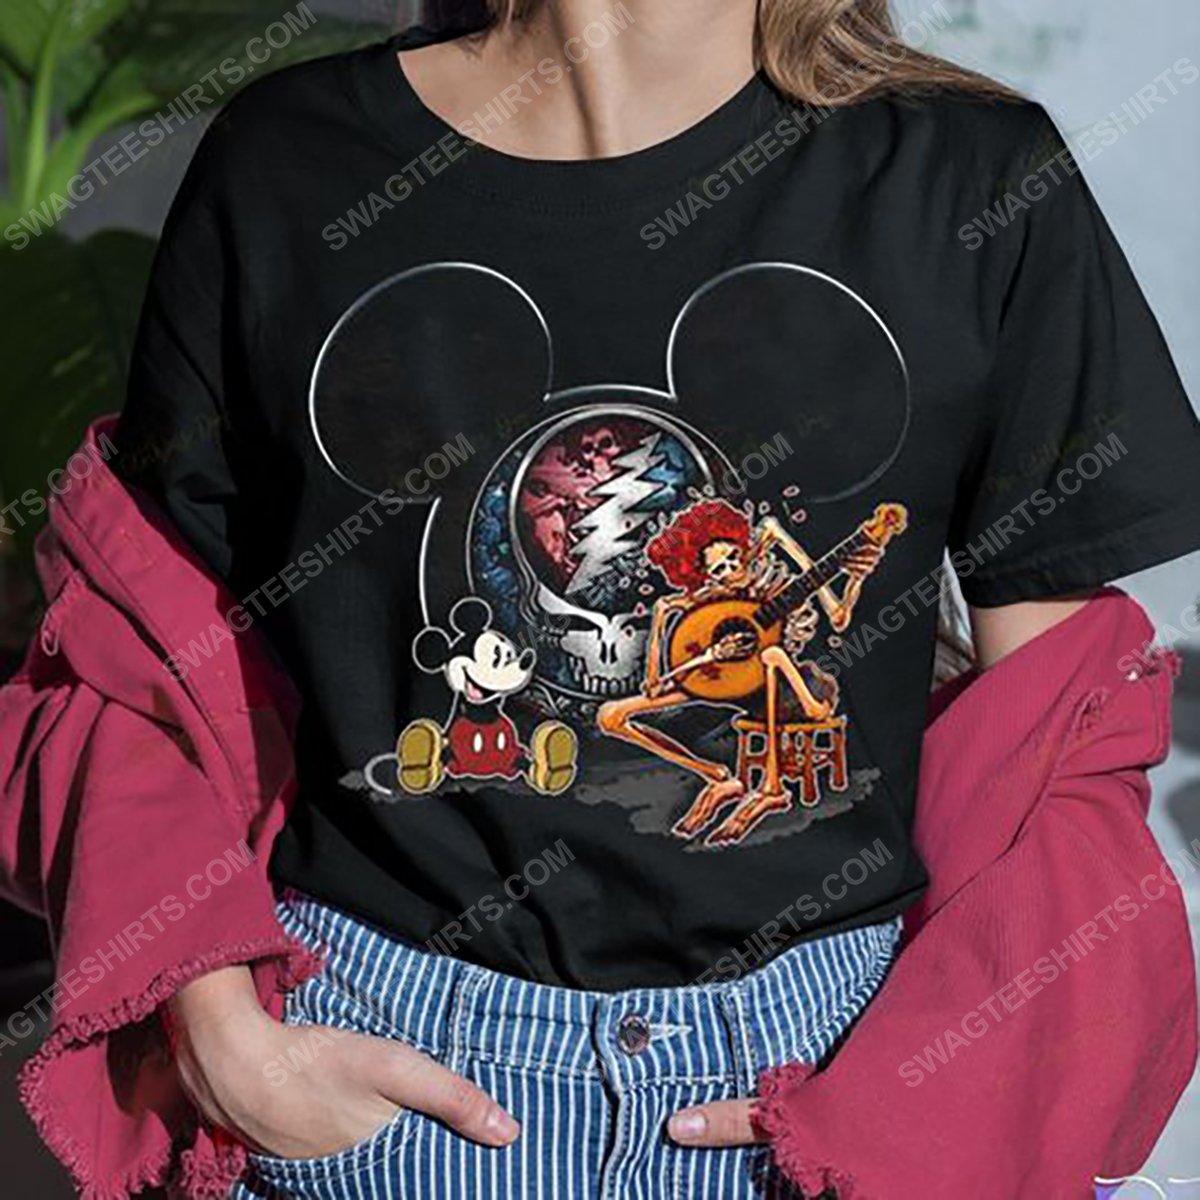 The grateful dead rock band and mickey mouse shirt 5(1)